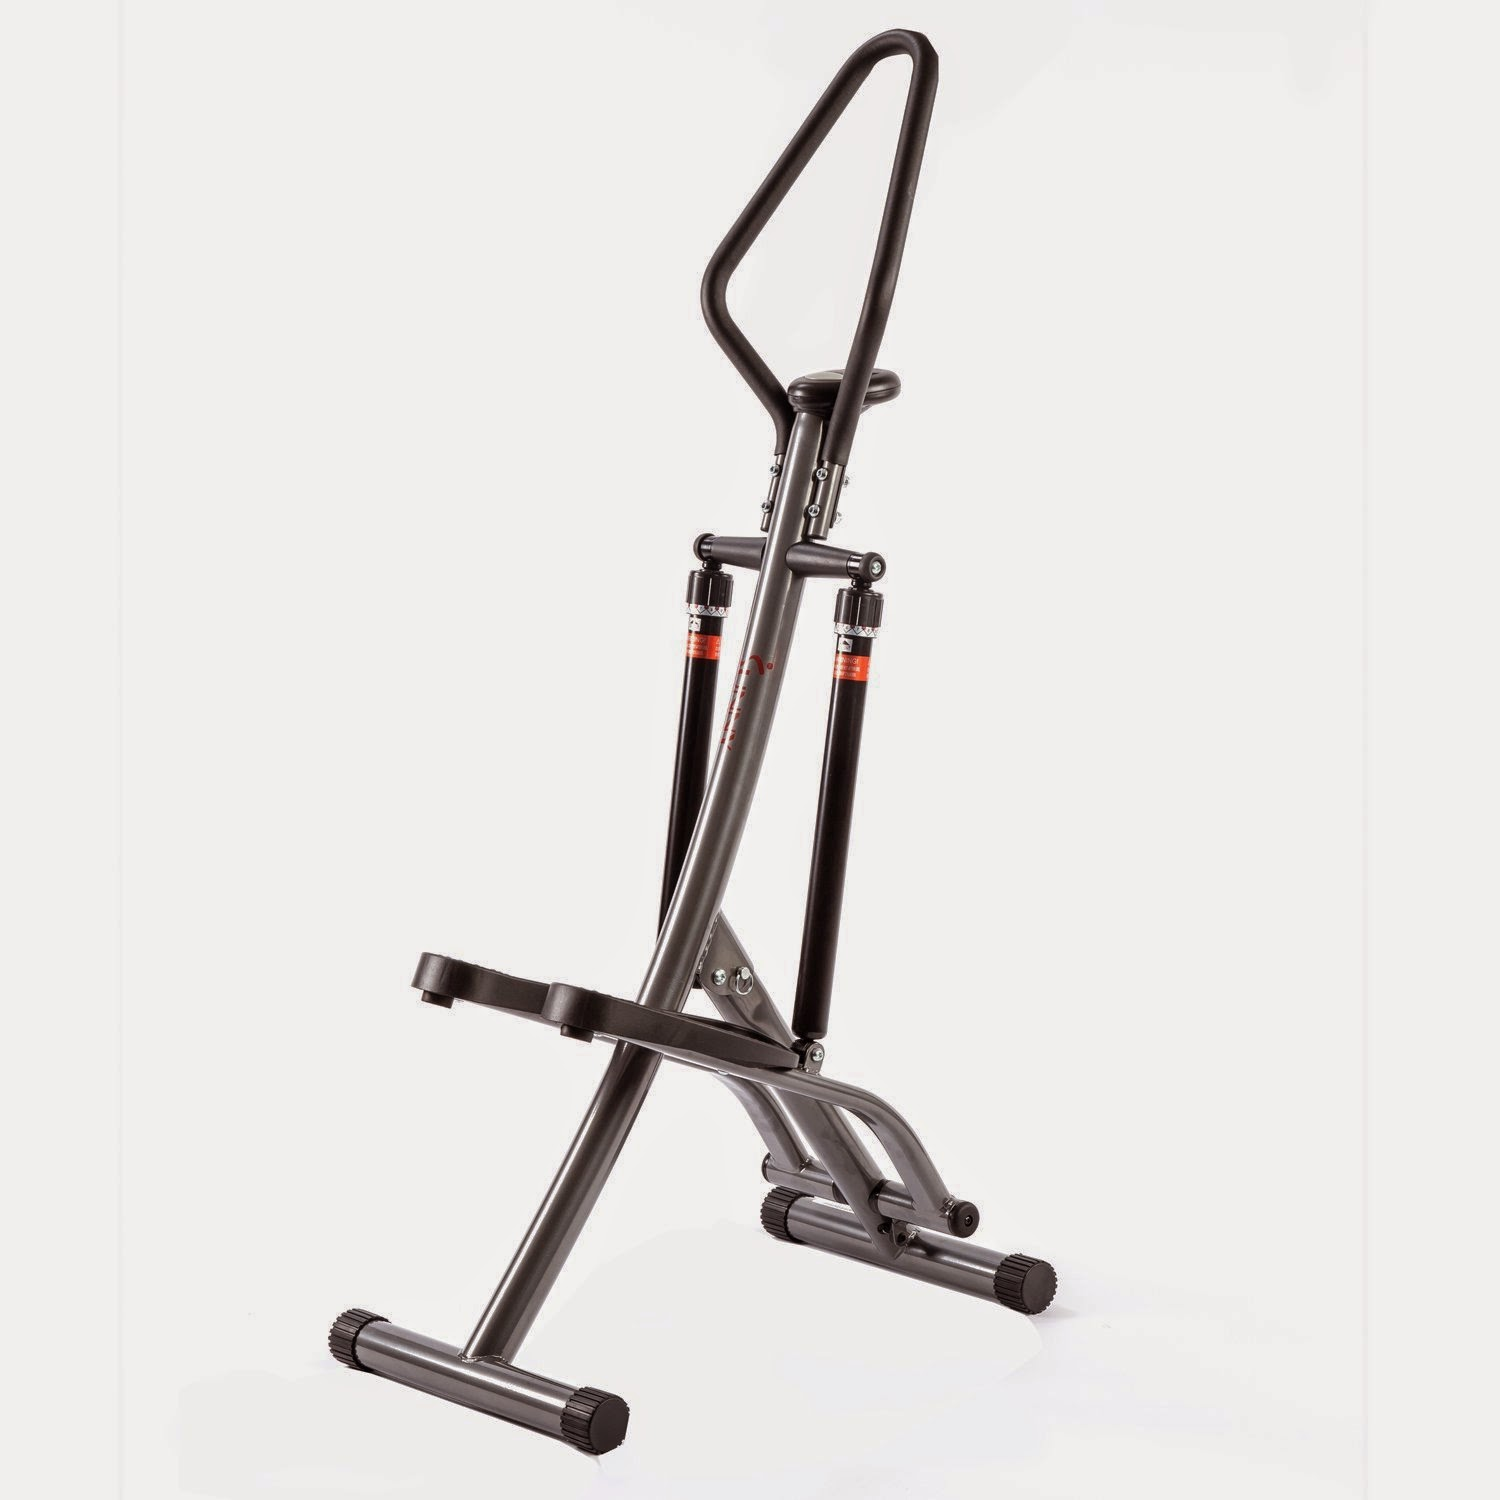 Sunny Health & Fitness Climbing Stepper, picture, image, review features & specifications